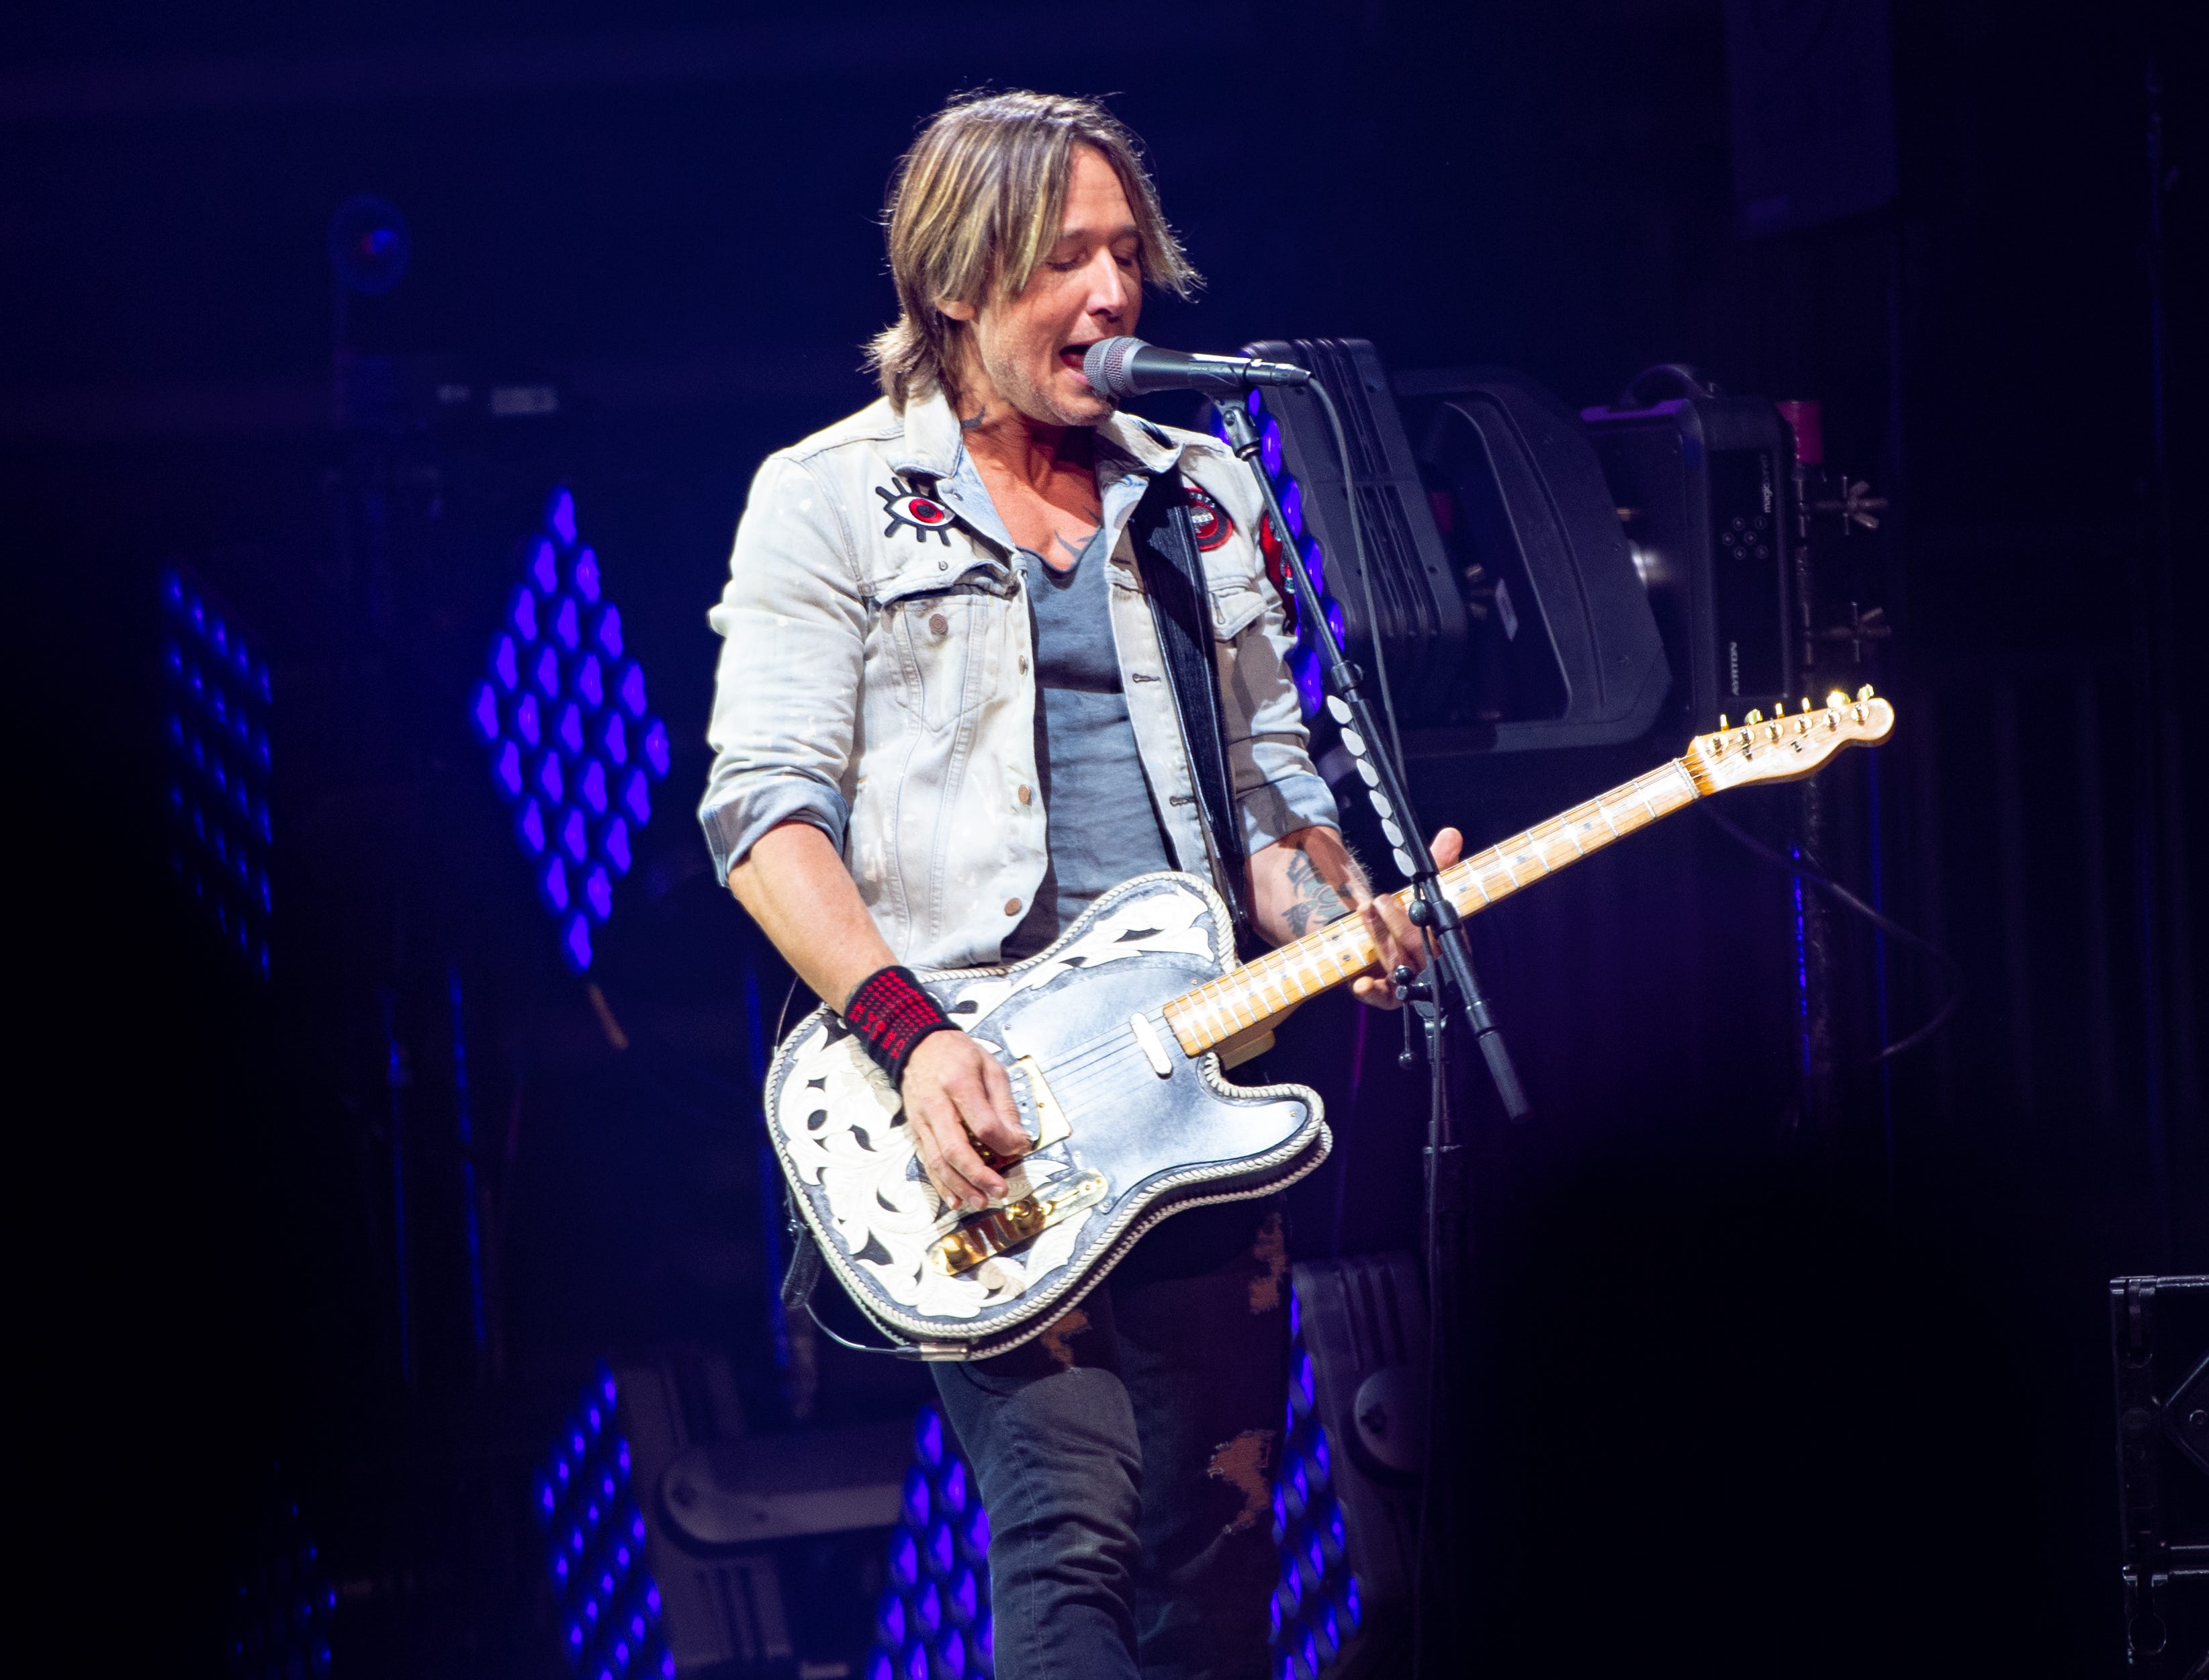 Keith Urban performs at the Giant Center in Hershey on Thursday night, October 25, 2018.